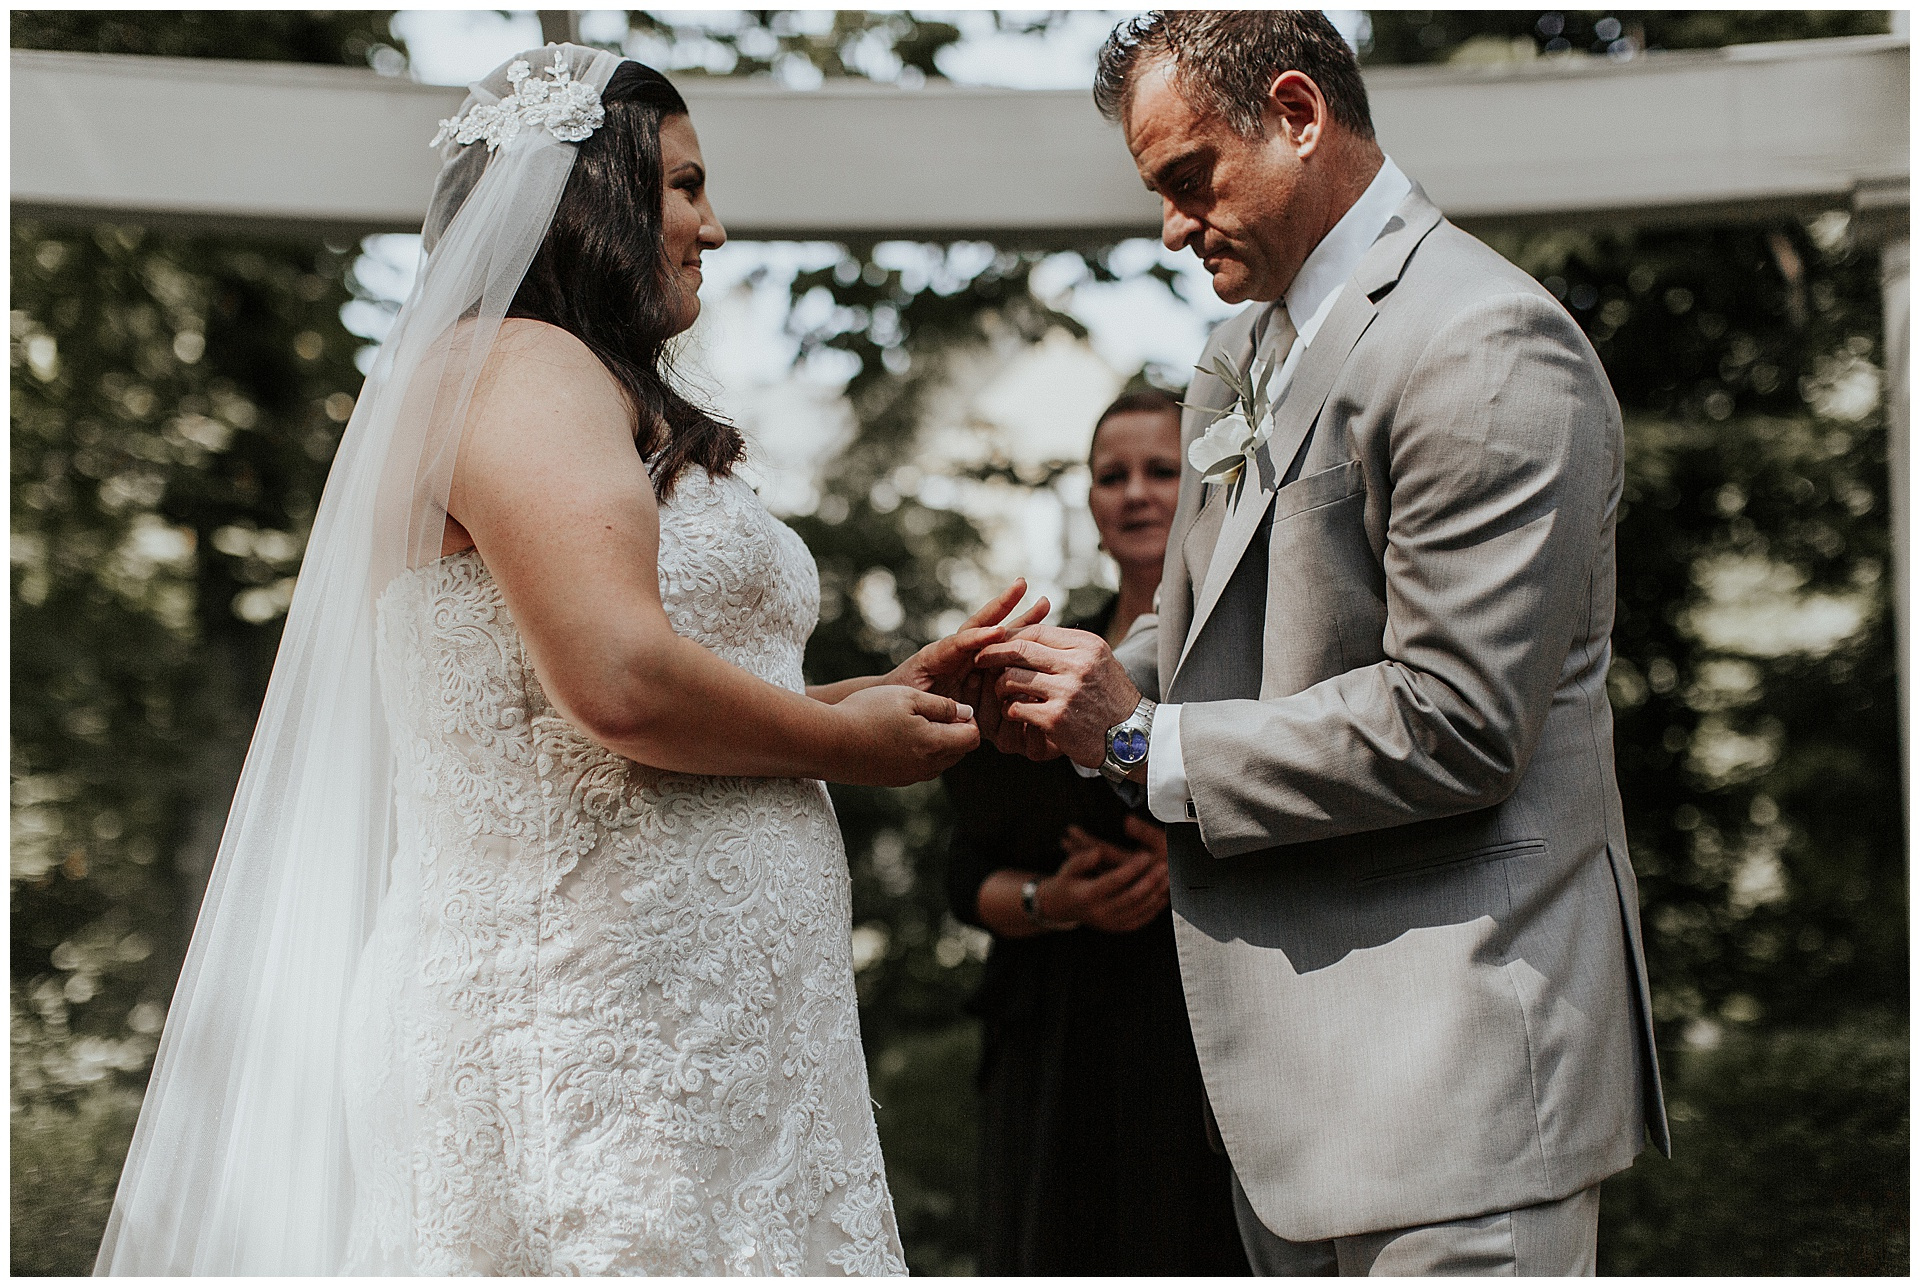 kelton house wedding columbus ohio_mia dimare photo28.jpg